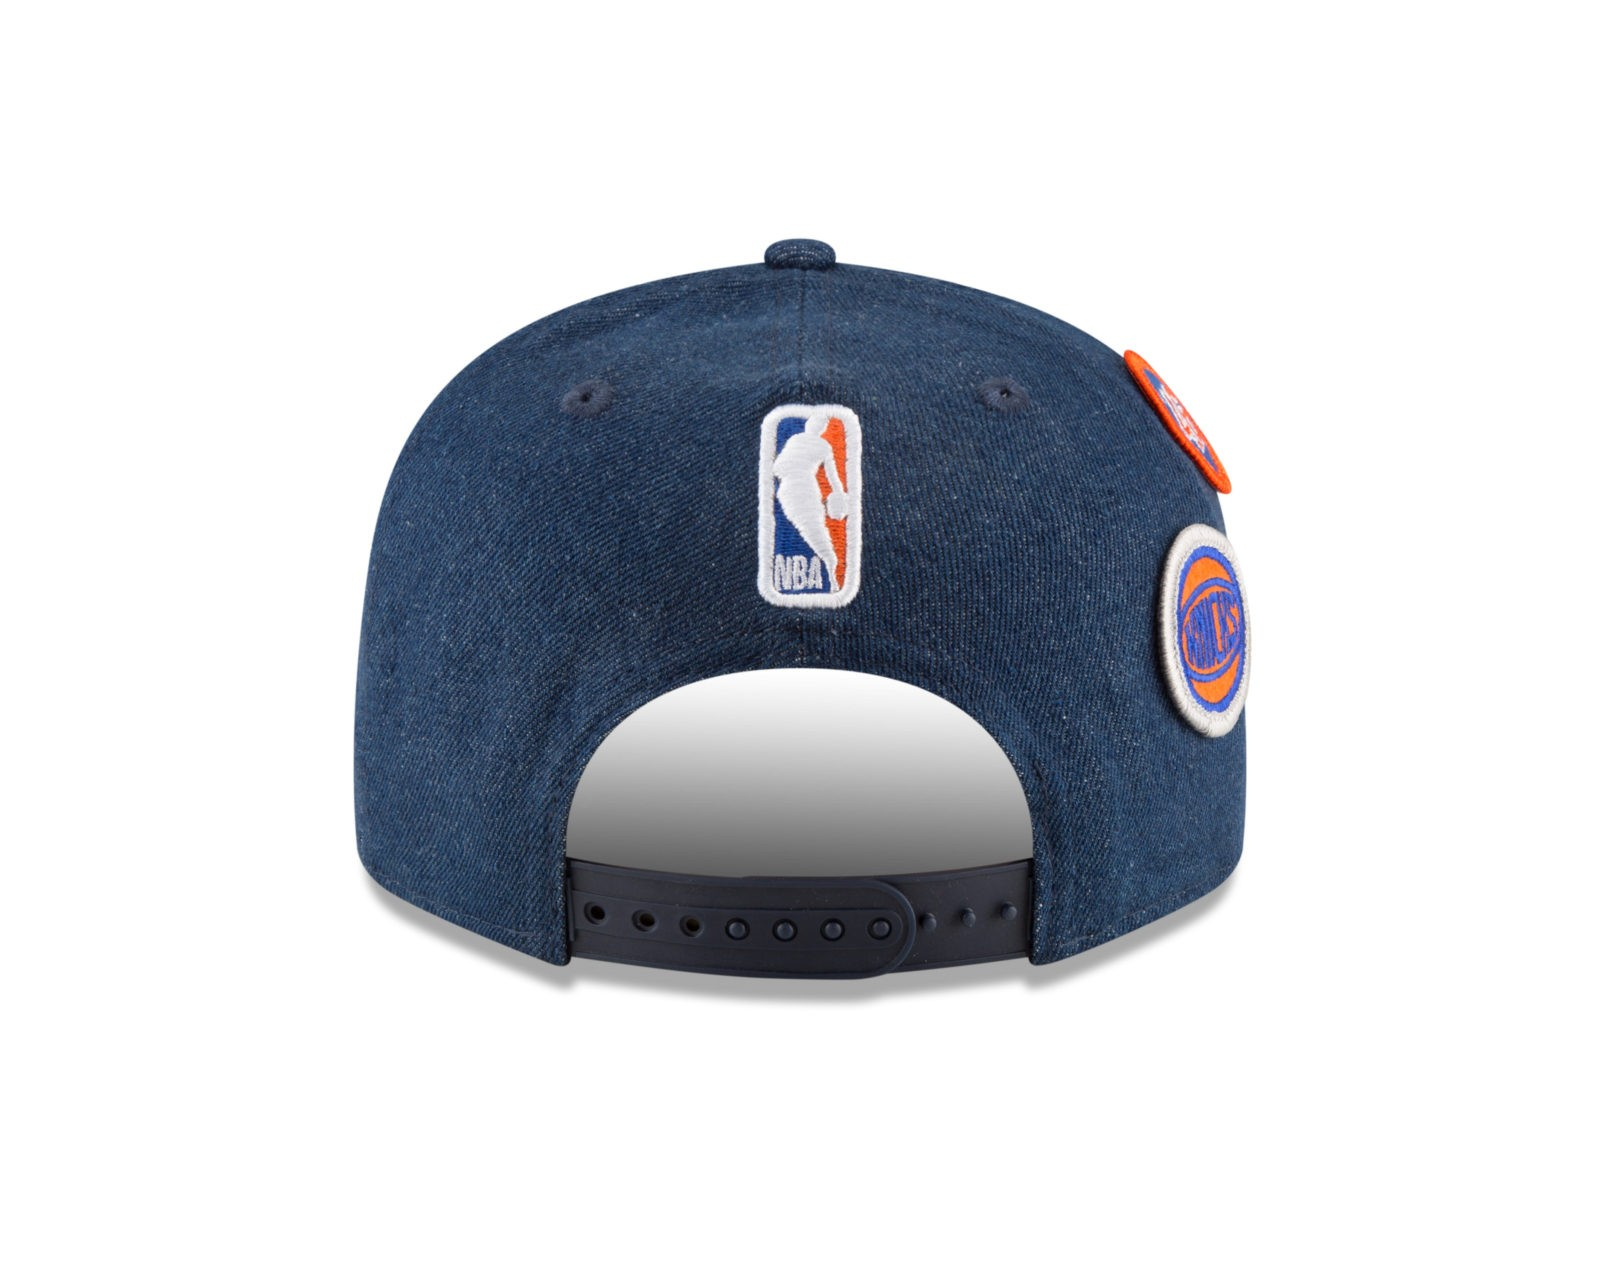 New York Knicks New Era 2018 Draft 9FIFTY Snapback Adjustable Hat – Denim cd5ed0347